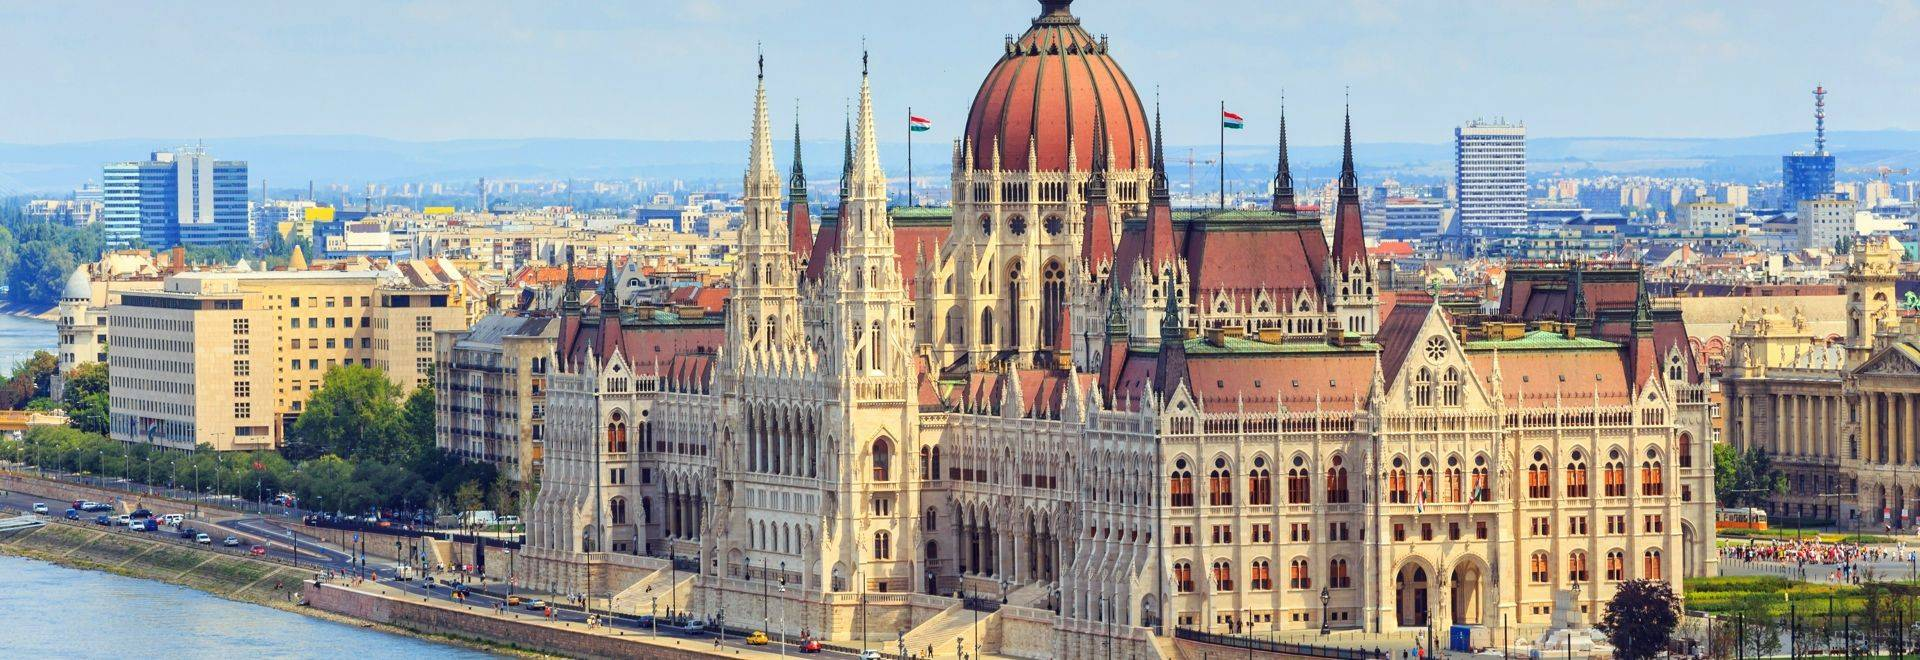 Shutterstock 219158107 Hungarian Parliament Building In Budapest